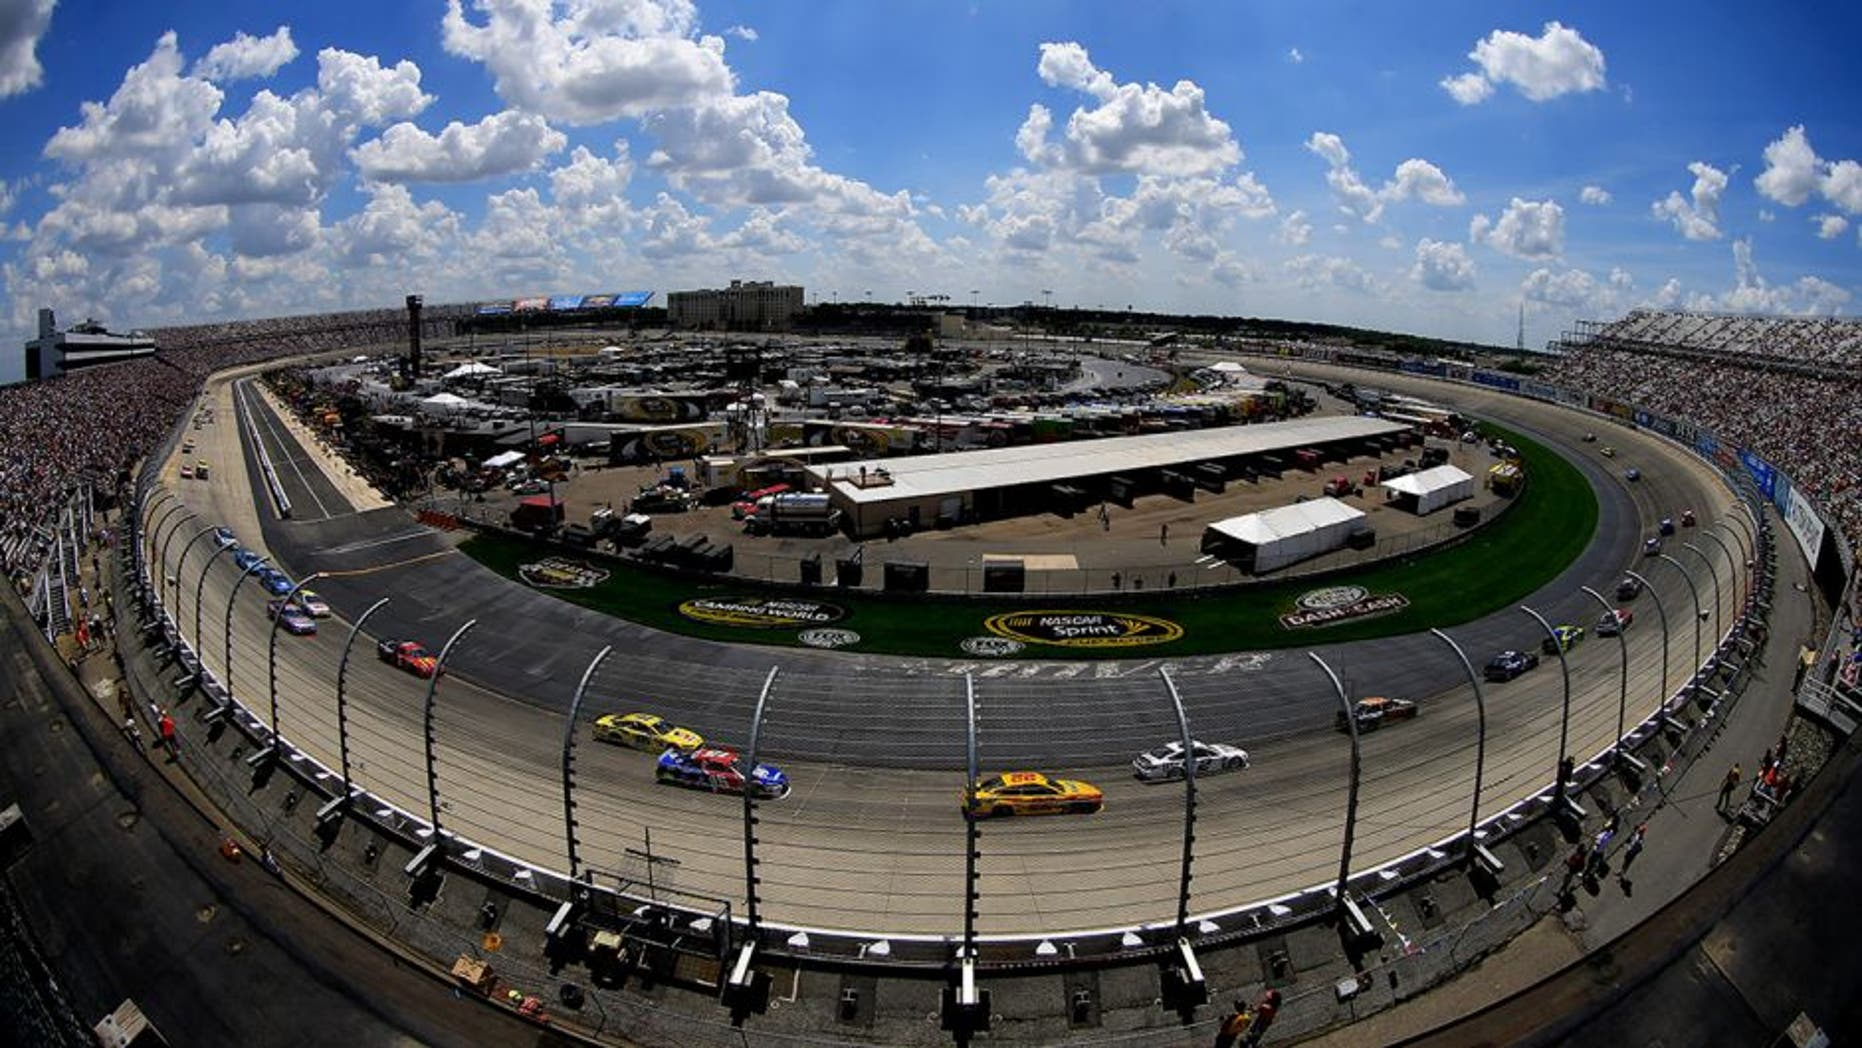 DOVER, DE - MAY 31: A general view of the NASCAR Sprint Cup Series FedEx 400 Benefiting Autism Speaks at Dover International Speedway on May 31, 2015 in Dover, Delaware. (Photo by Chris Trotman/NASCAR via Getty Images)